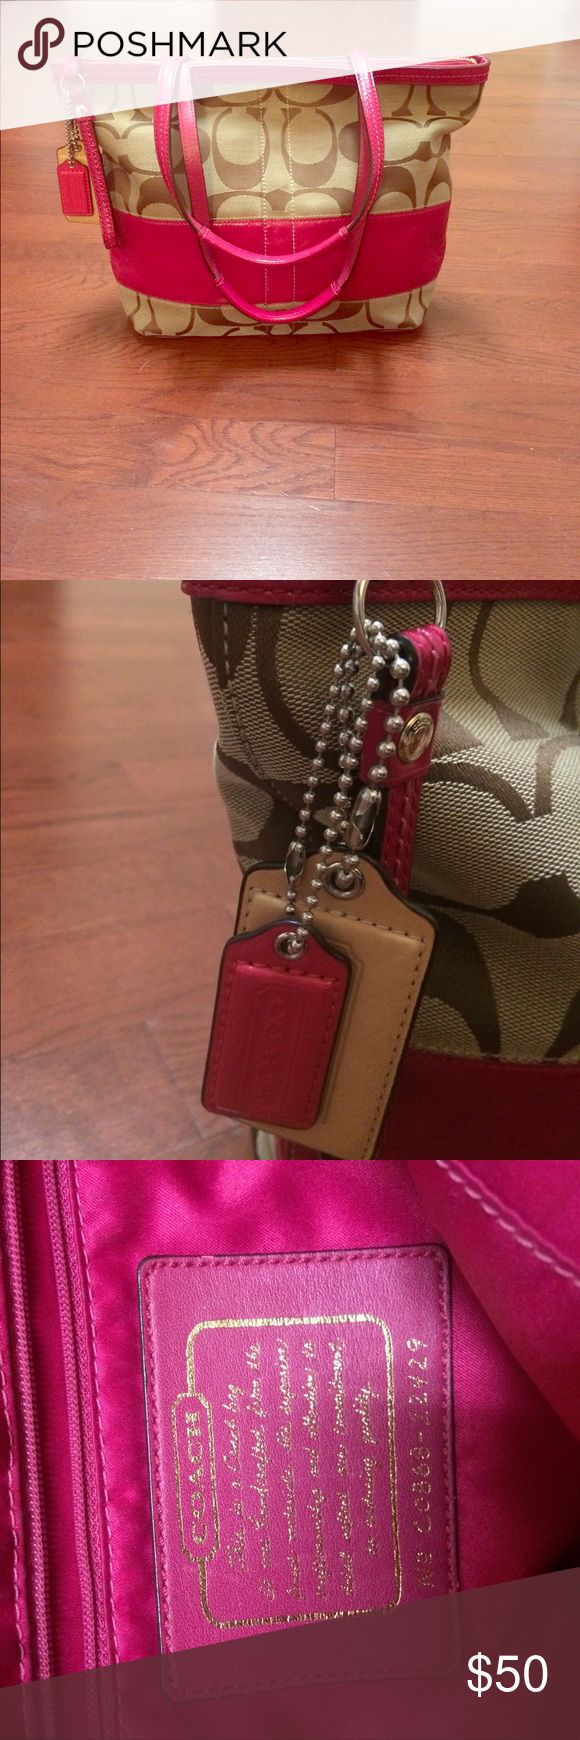 """Coach Purse Excellent condition, worn markings inside on fuchsia silk material where zipper is located (as seen in pictures, but not bad at all)  purse size: 13.5"""" wide, 9.5"""" length - more of a shoulder bag, does not include additional straps Coach Bags Shoulder Bags"""